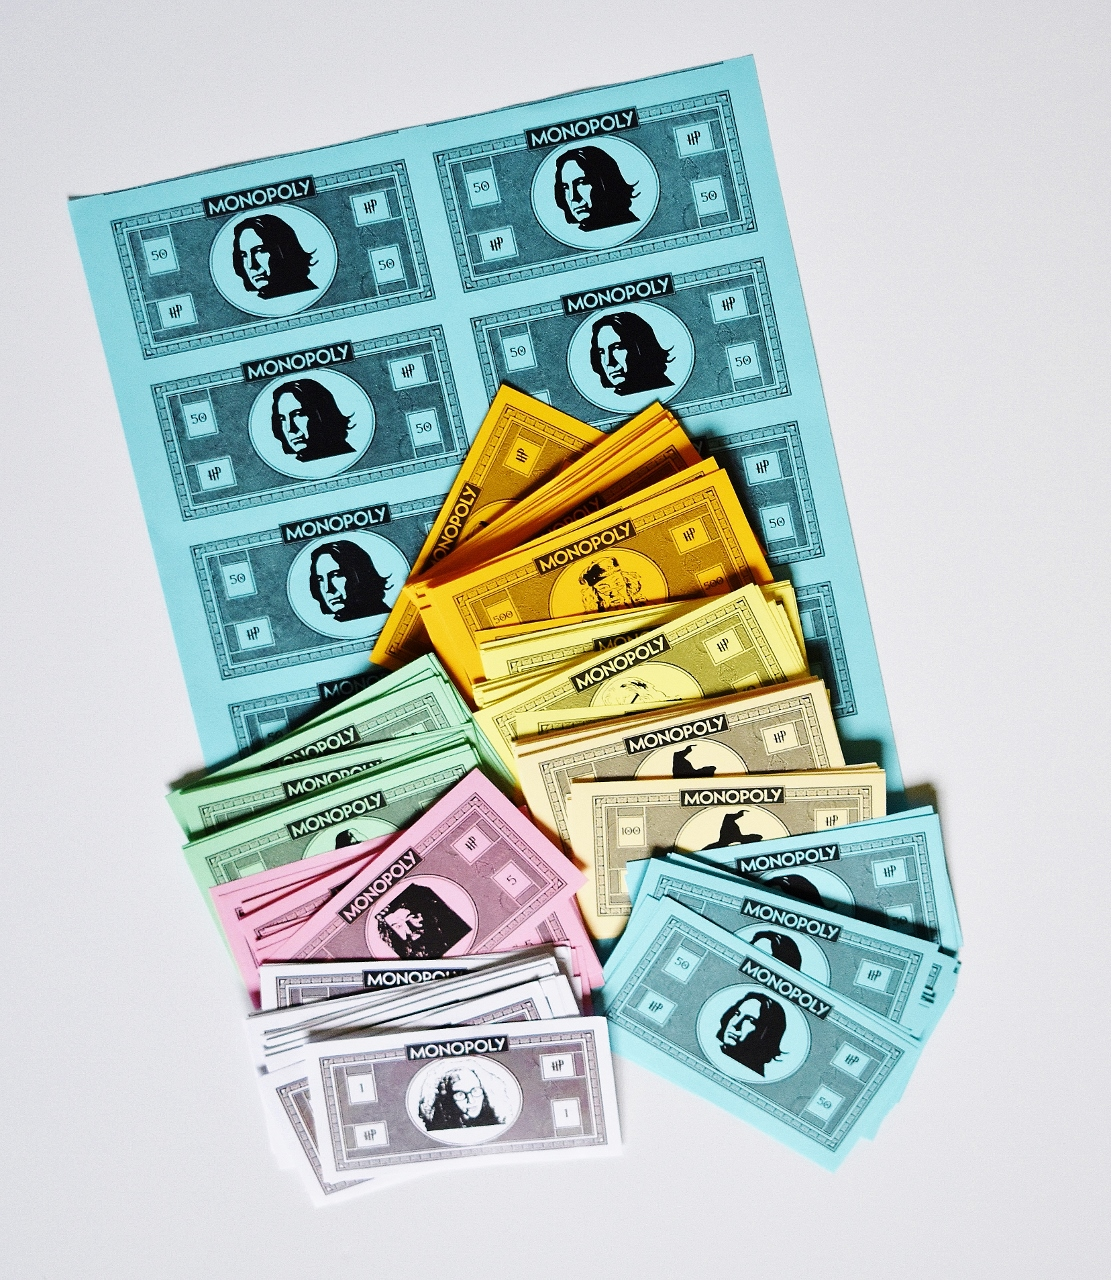 photo regarding Monopoly Money Printable known as Do-it-yourself Harry Potter Monopoly Video game with Free of charge Printables